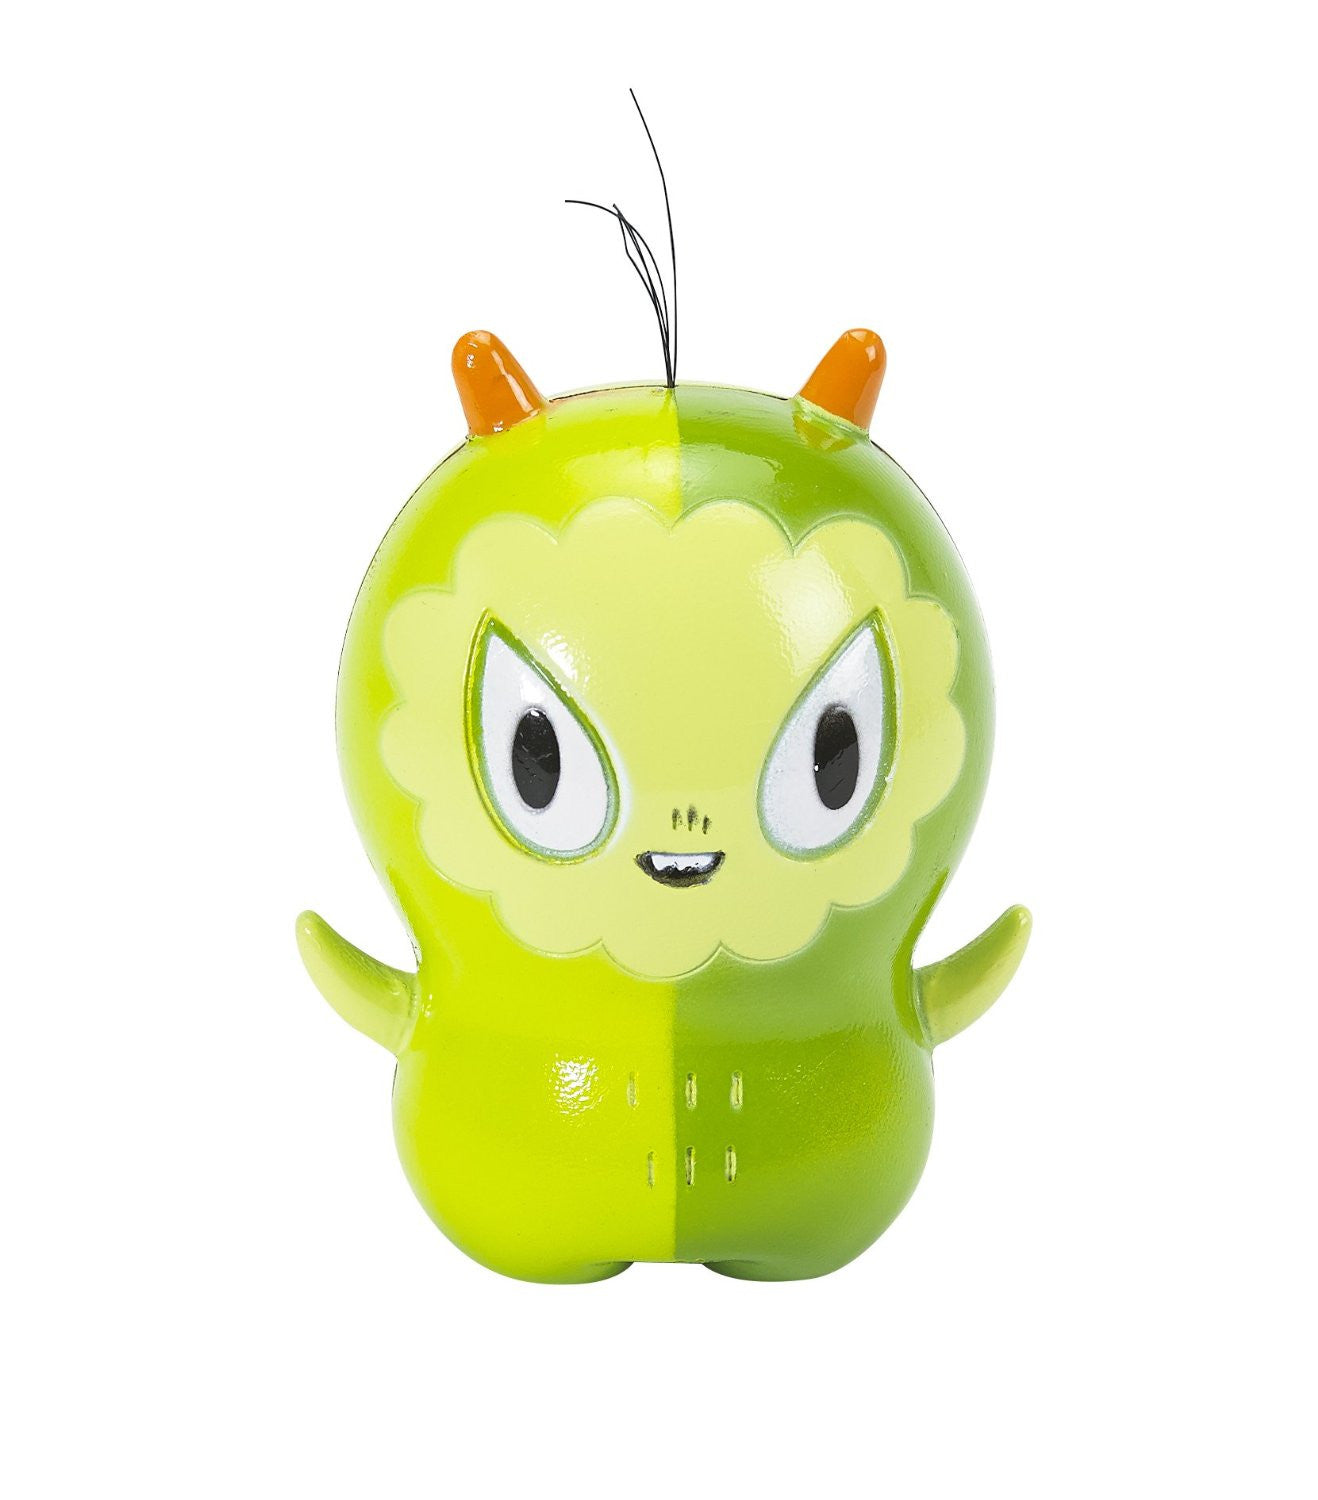 Moji Mi Living Emoticon Figure in Green by Little Kids - Off The Wall Toys and Gifts